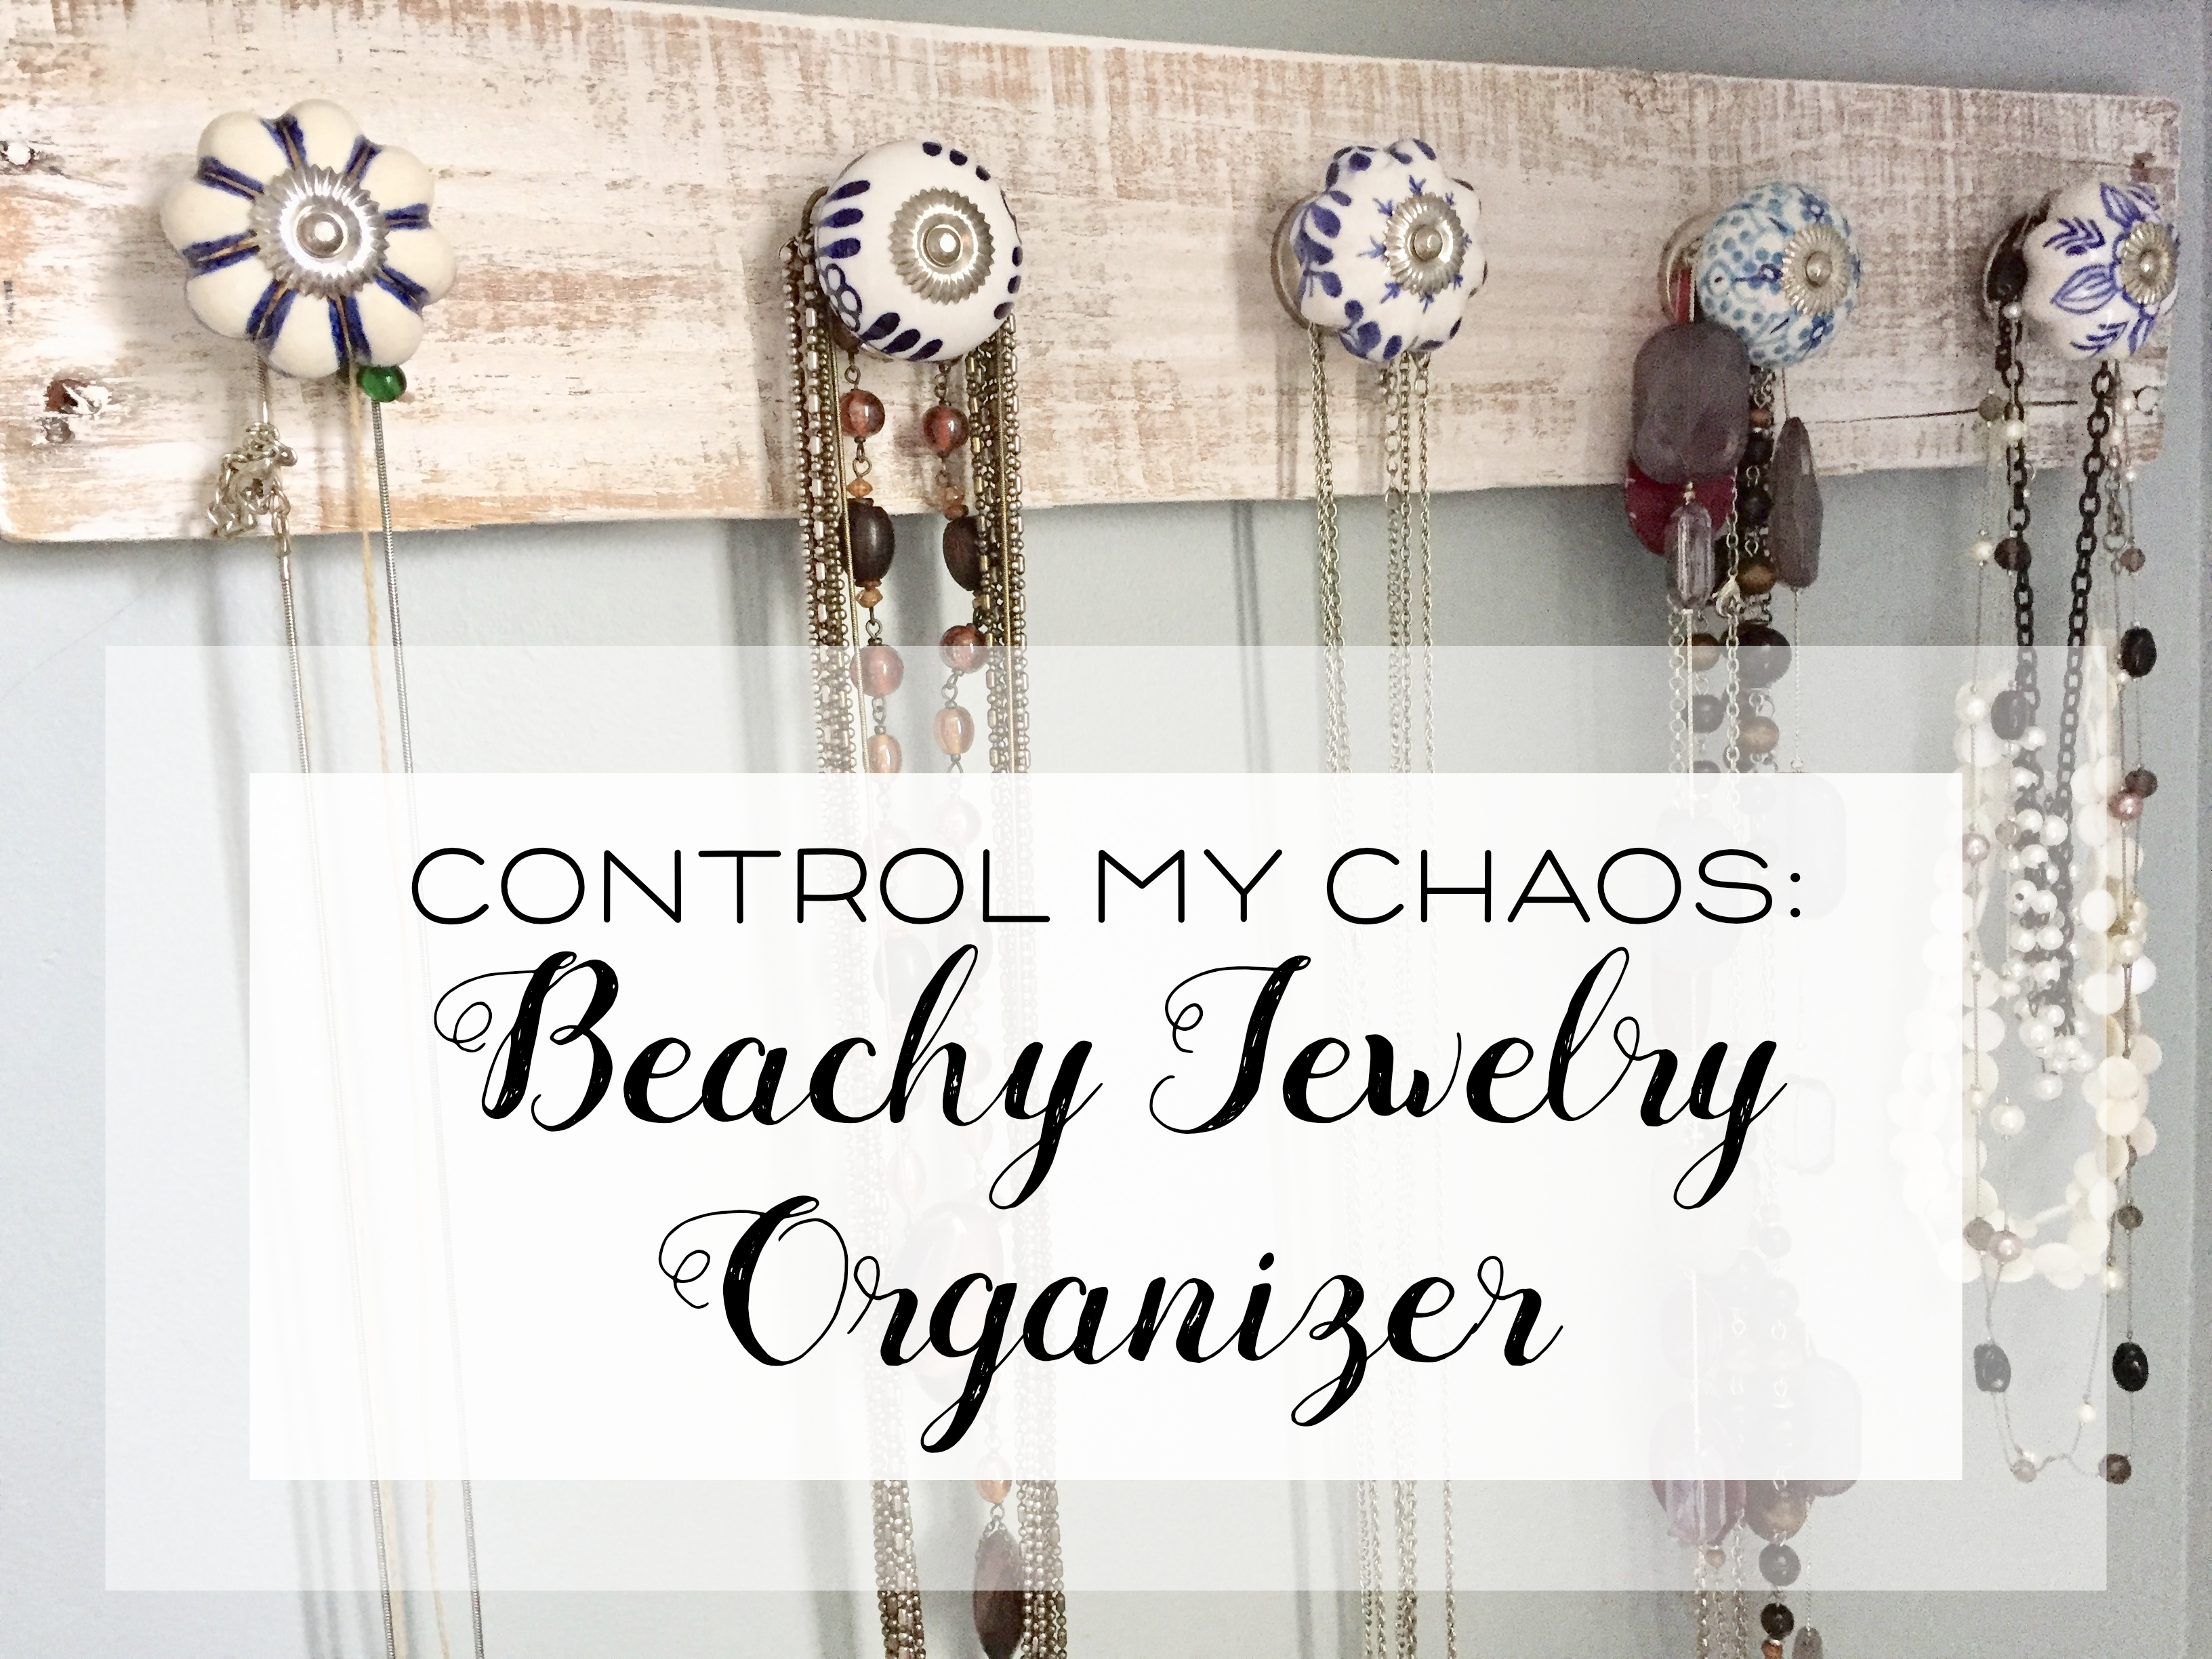 beachy jewelry organizer